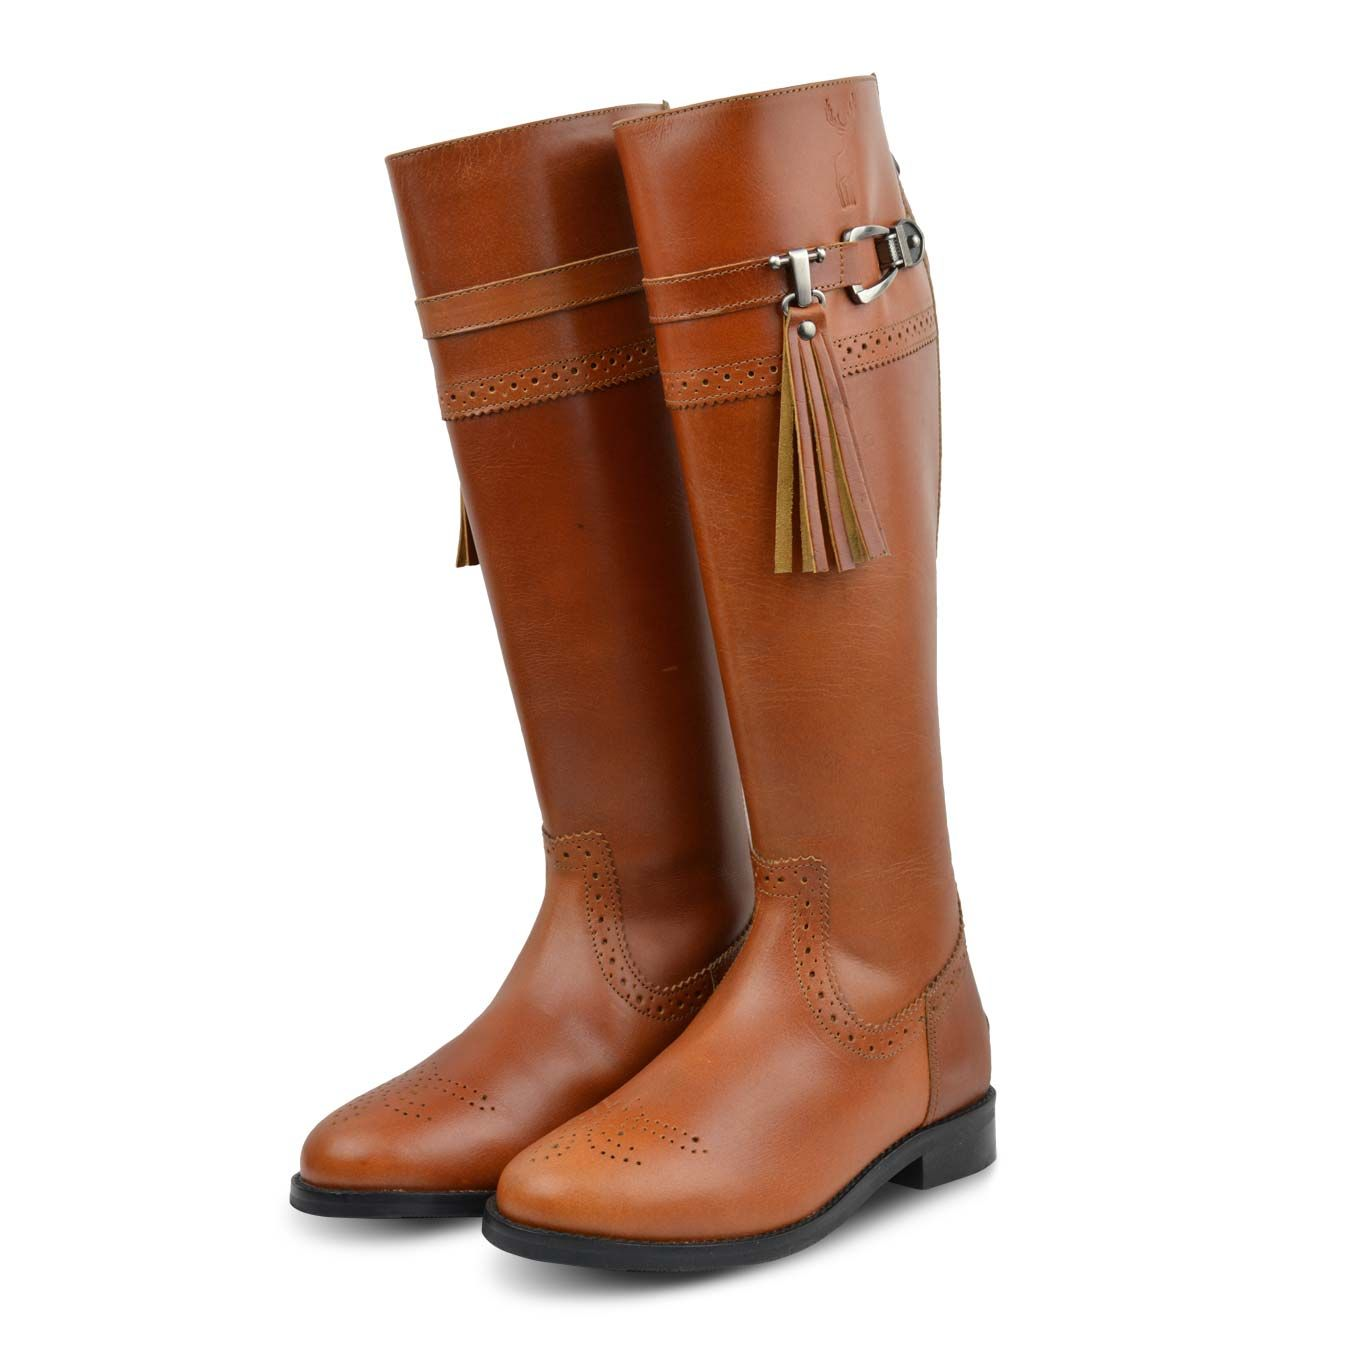 97226b52ae16a New and exclusive to Derby House, the Kinpurnie Orkney Long Leather Riding  Boots are a